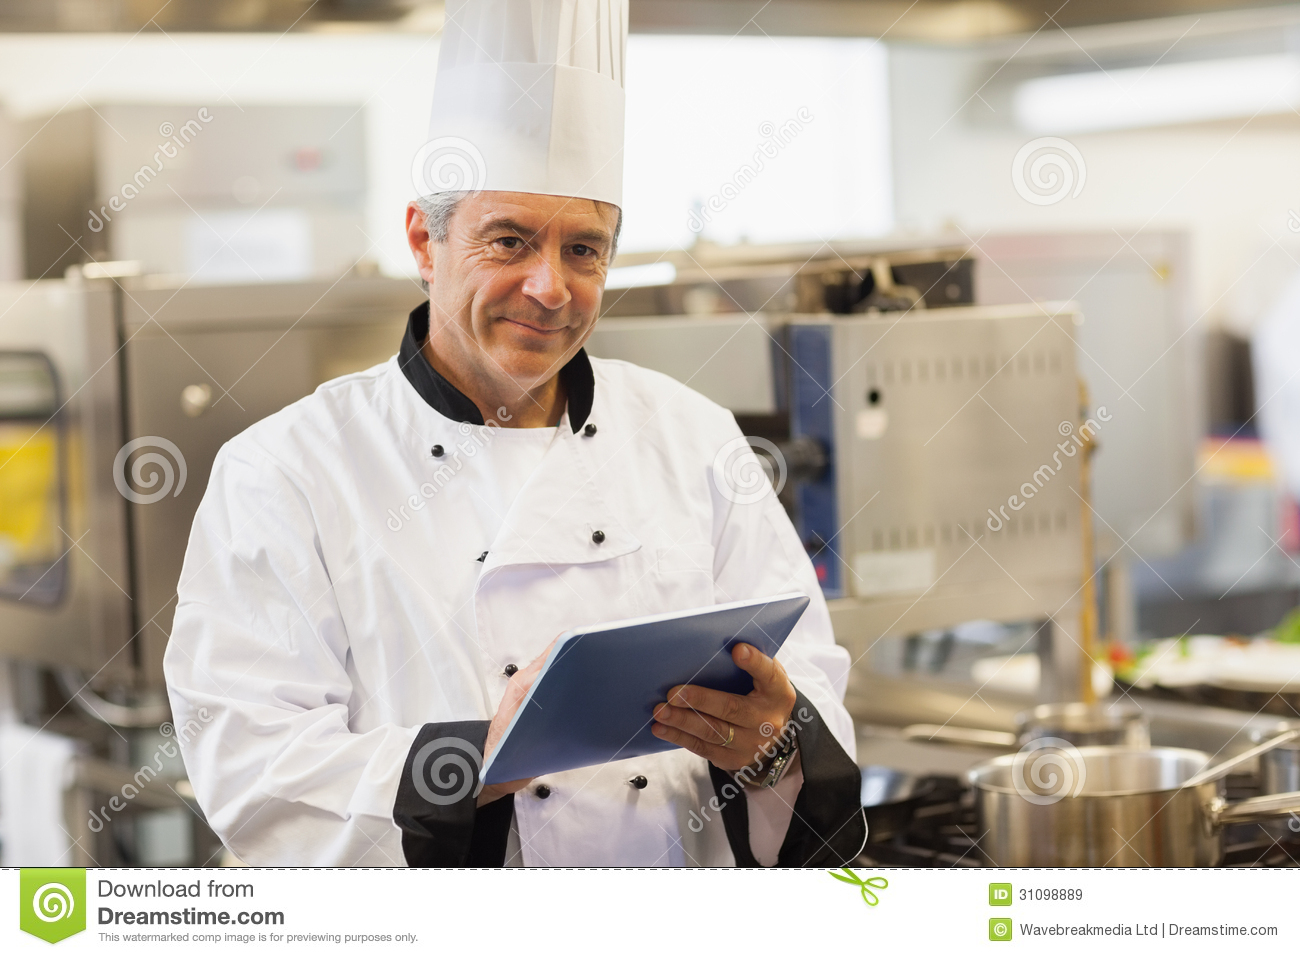 kitchen inventory app ikea faucets chef using his digital tablet and looking at camera